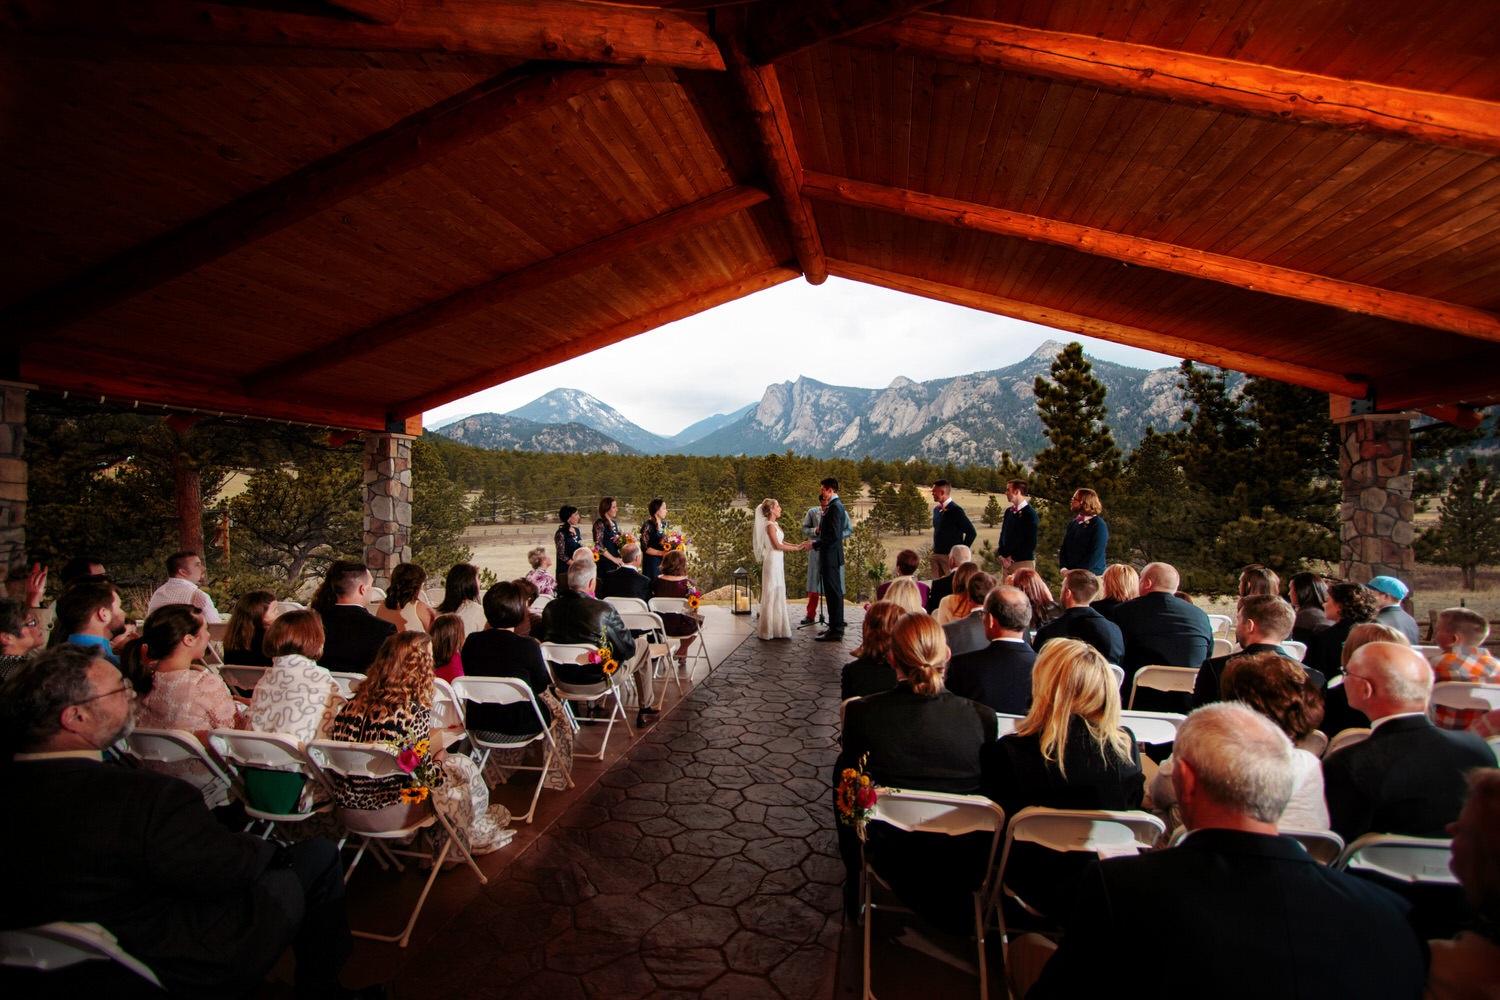 estes-park-wedding-photographer-tomKphoto-059.jpg